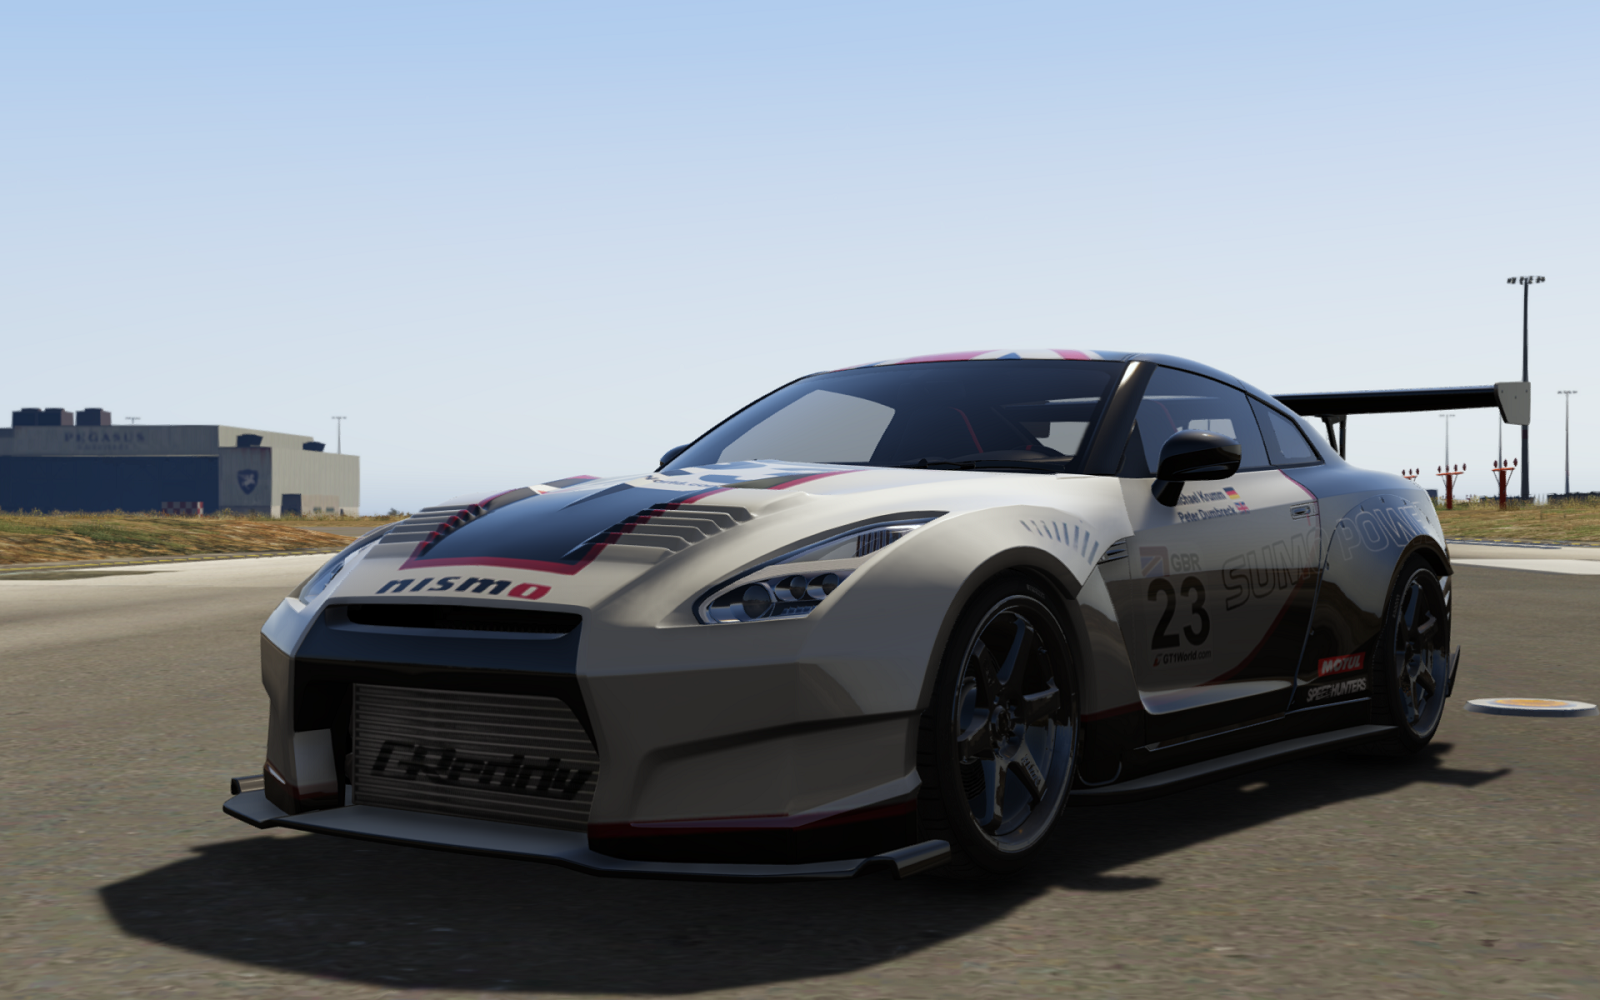 Nissan Gtr 2015 Sumo Power Gta5 Mods Com